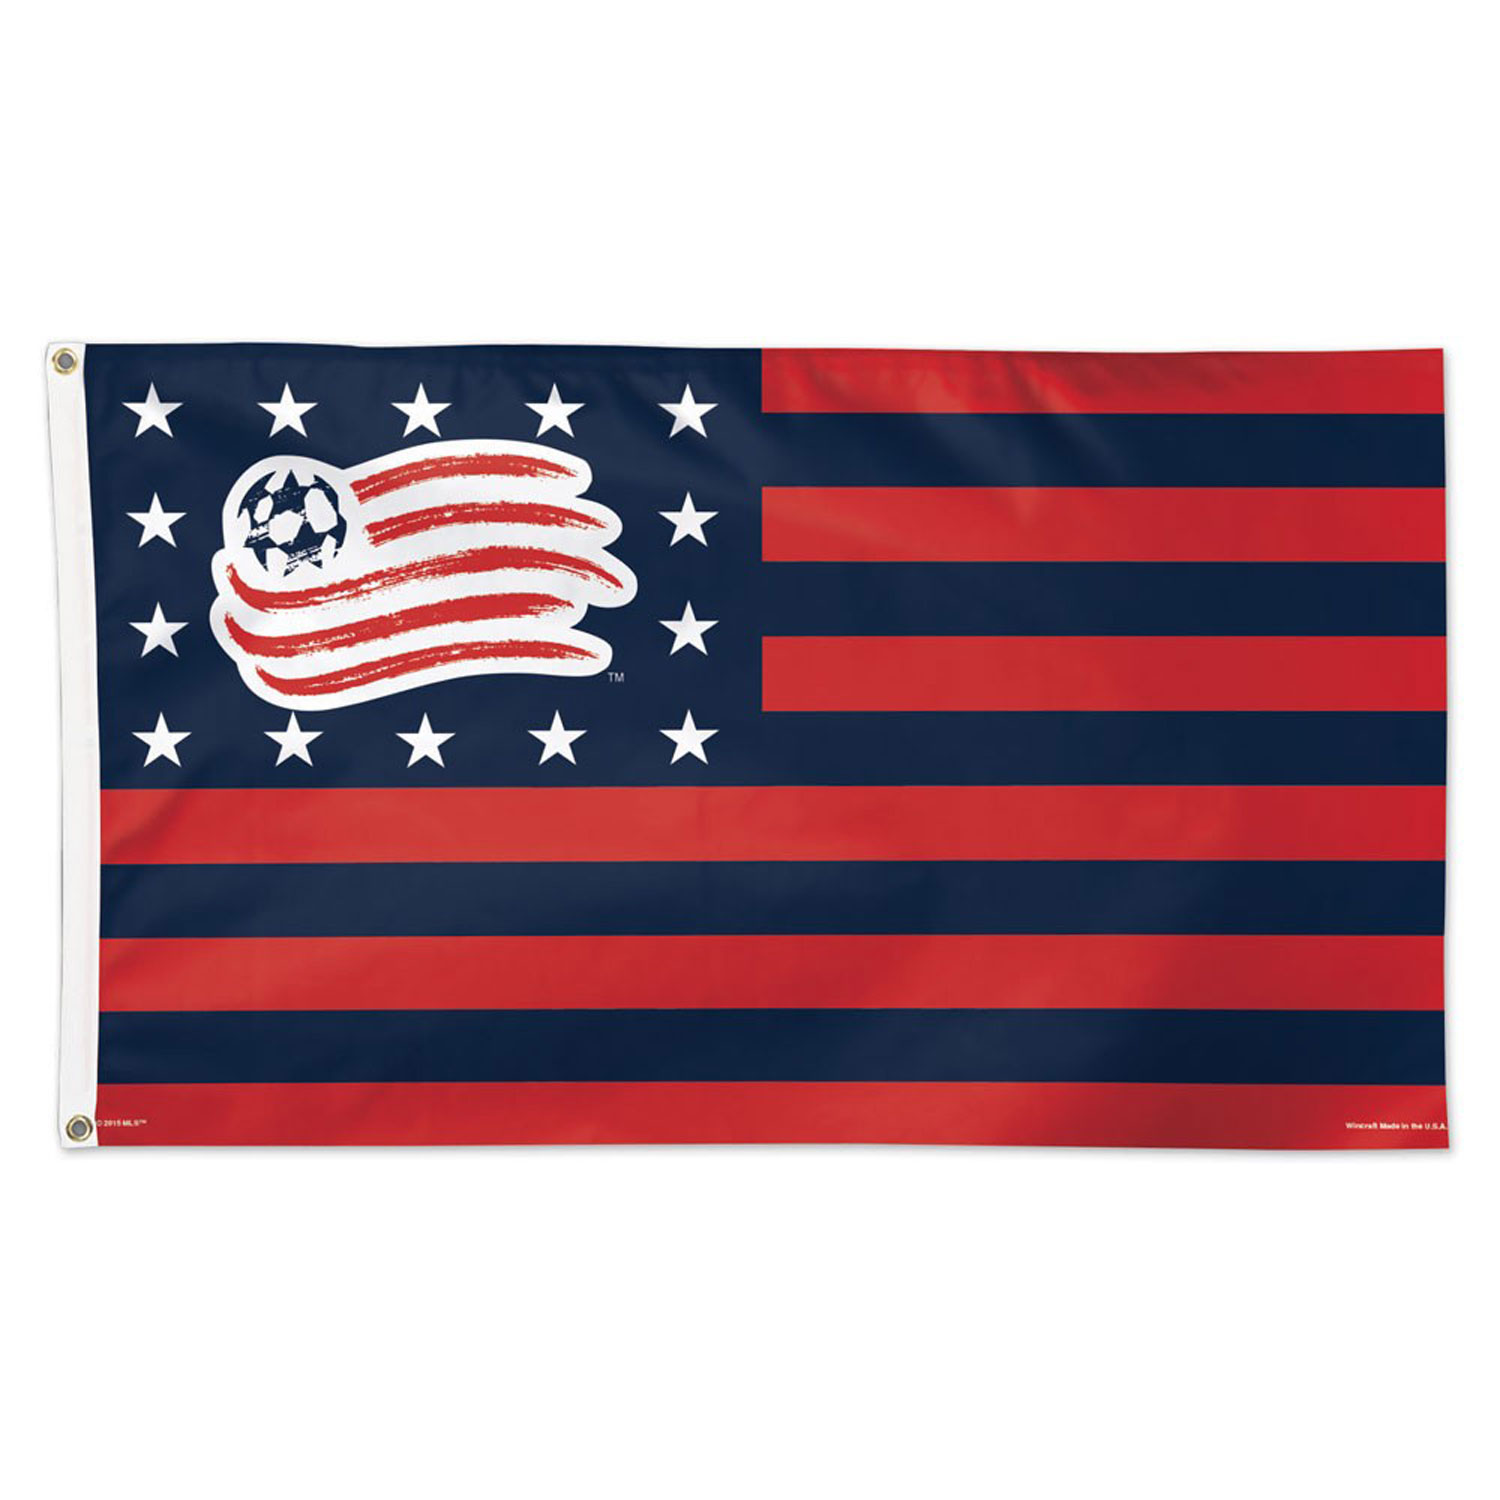 New England Revolution Stars and Stripes Flag - Deluxe 3